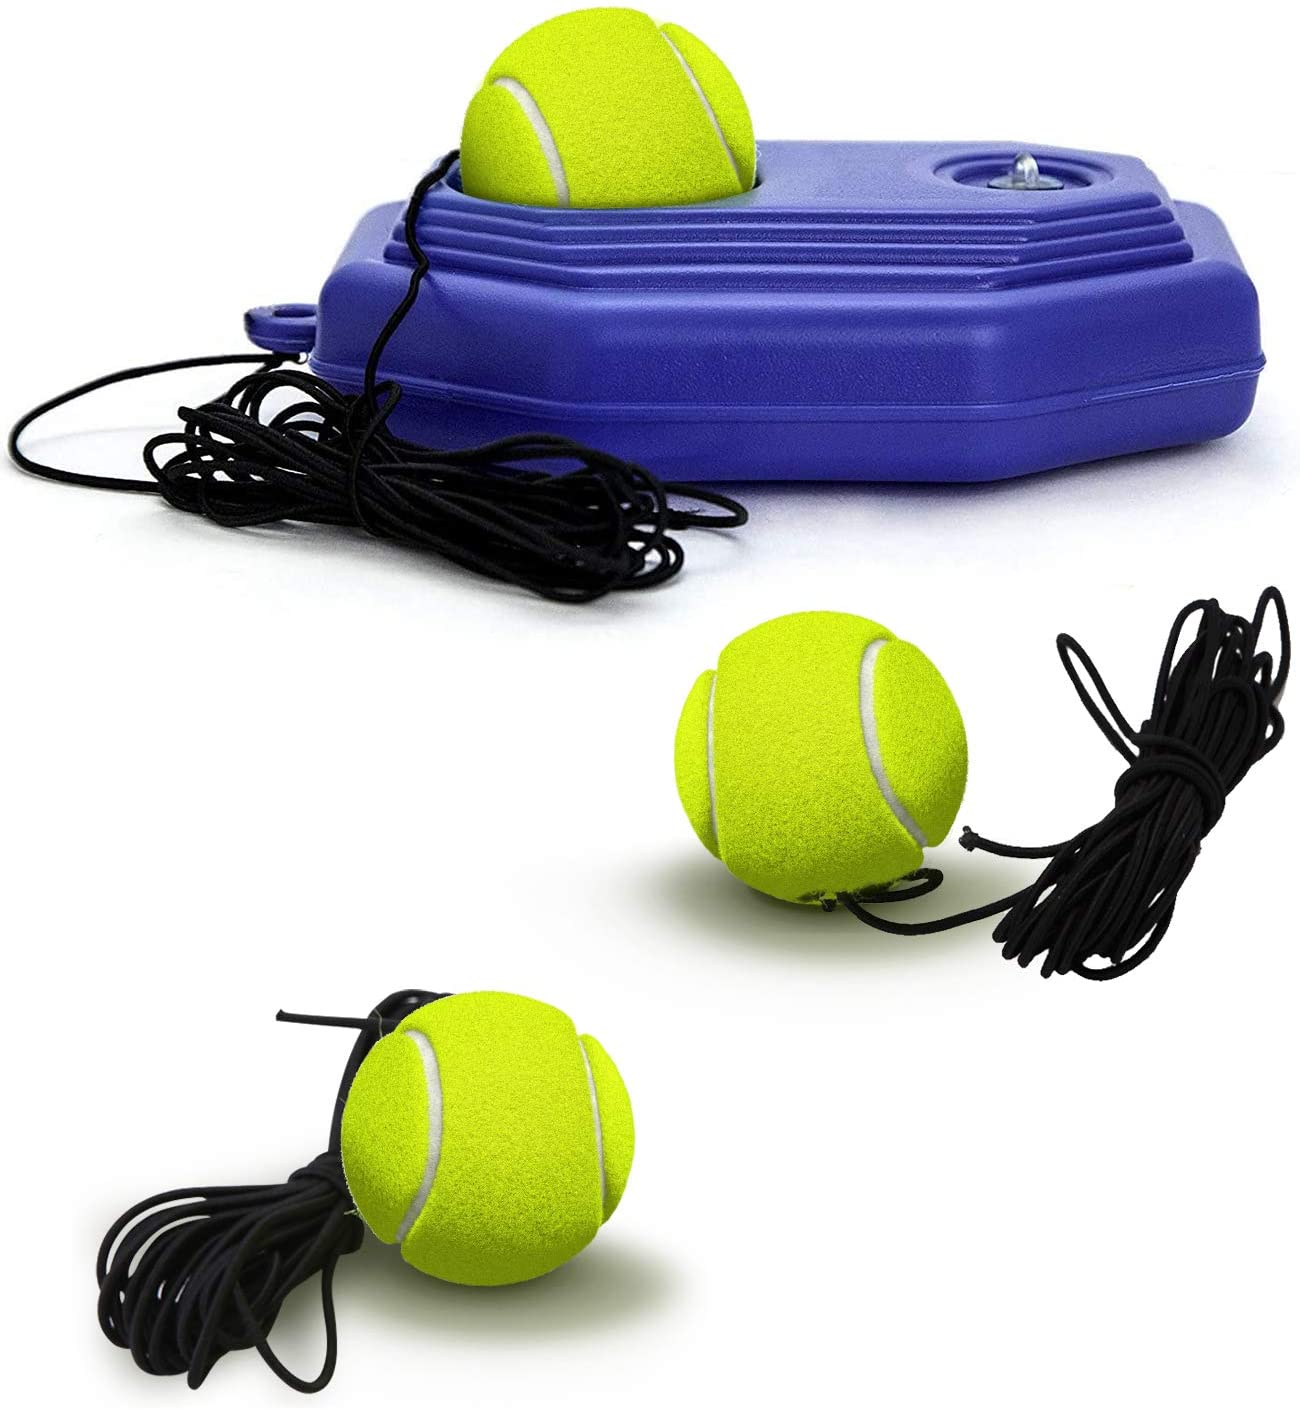 Hoperay Tennis Trainer Rebound Ball, 1 Study Rebounder + 3 Balls with String + 1 Convenient mesh Carry Bag, Solo Practice Equipment, Machine Portable Self Training Tool